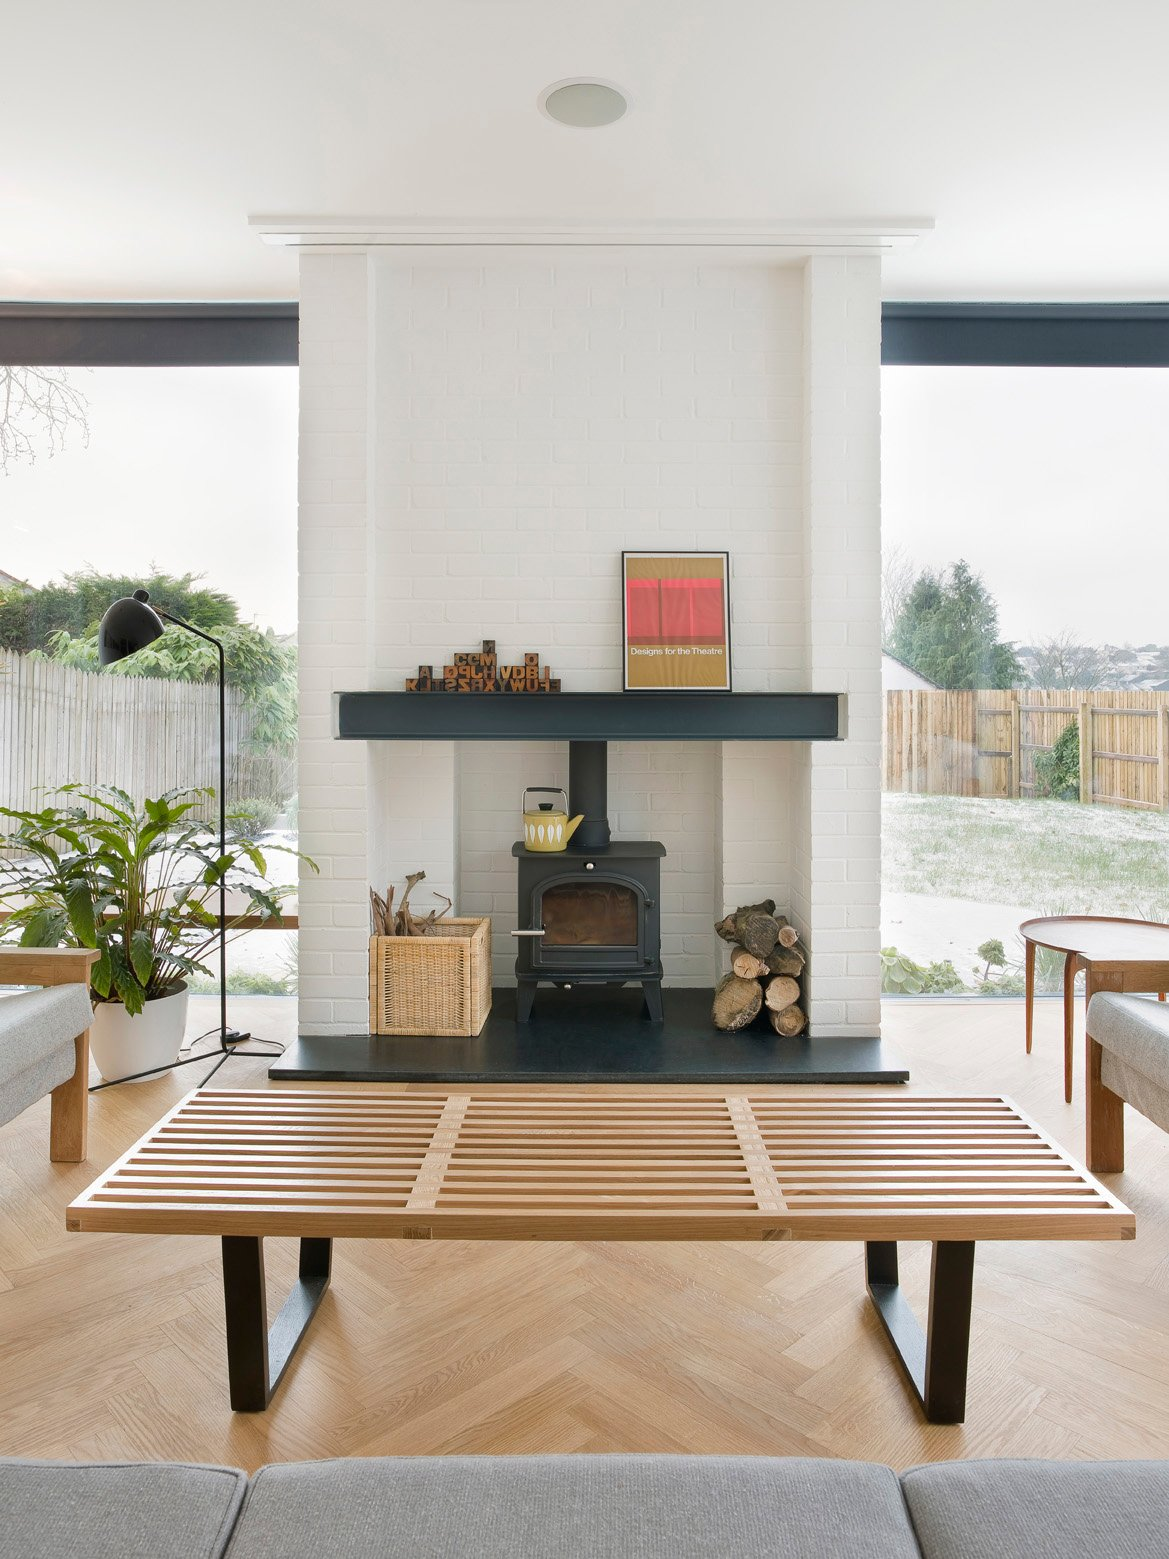 In the living room, a Nelson bench doubles as a coffee table, and a wood-burning stove from Cleanburn Stoves keeps the space warm. Tagged: Living Room, Ceiling Lighting, Light Hardwood Floor, Bench, and Wood Burning Fireplace.  Modern Wood-Burning Stoves by Megan Hamaker from An Obsessed Designer Fills Her Home with Vintage Finds